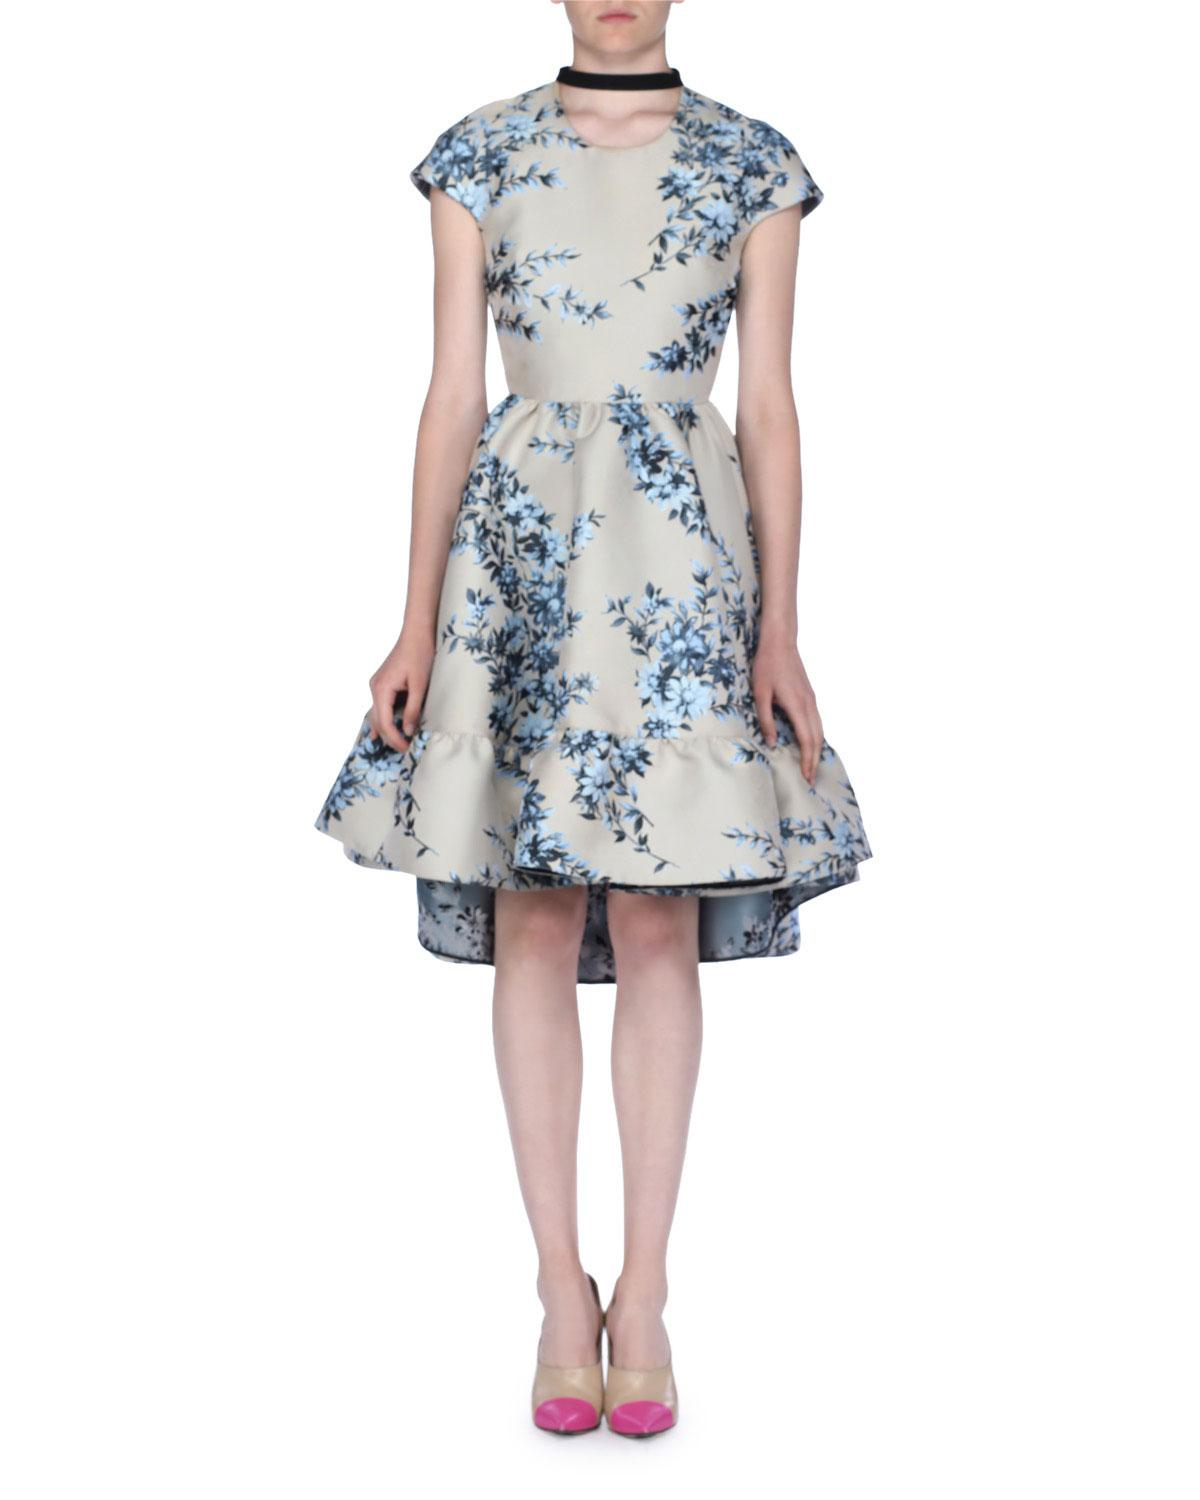 fdd4f275911 Lyst - Fendi Cap-sleeve Floral Jacquard Dress With Ribbon Tie in Natural